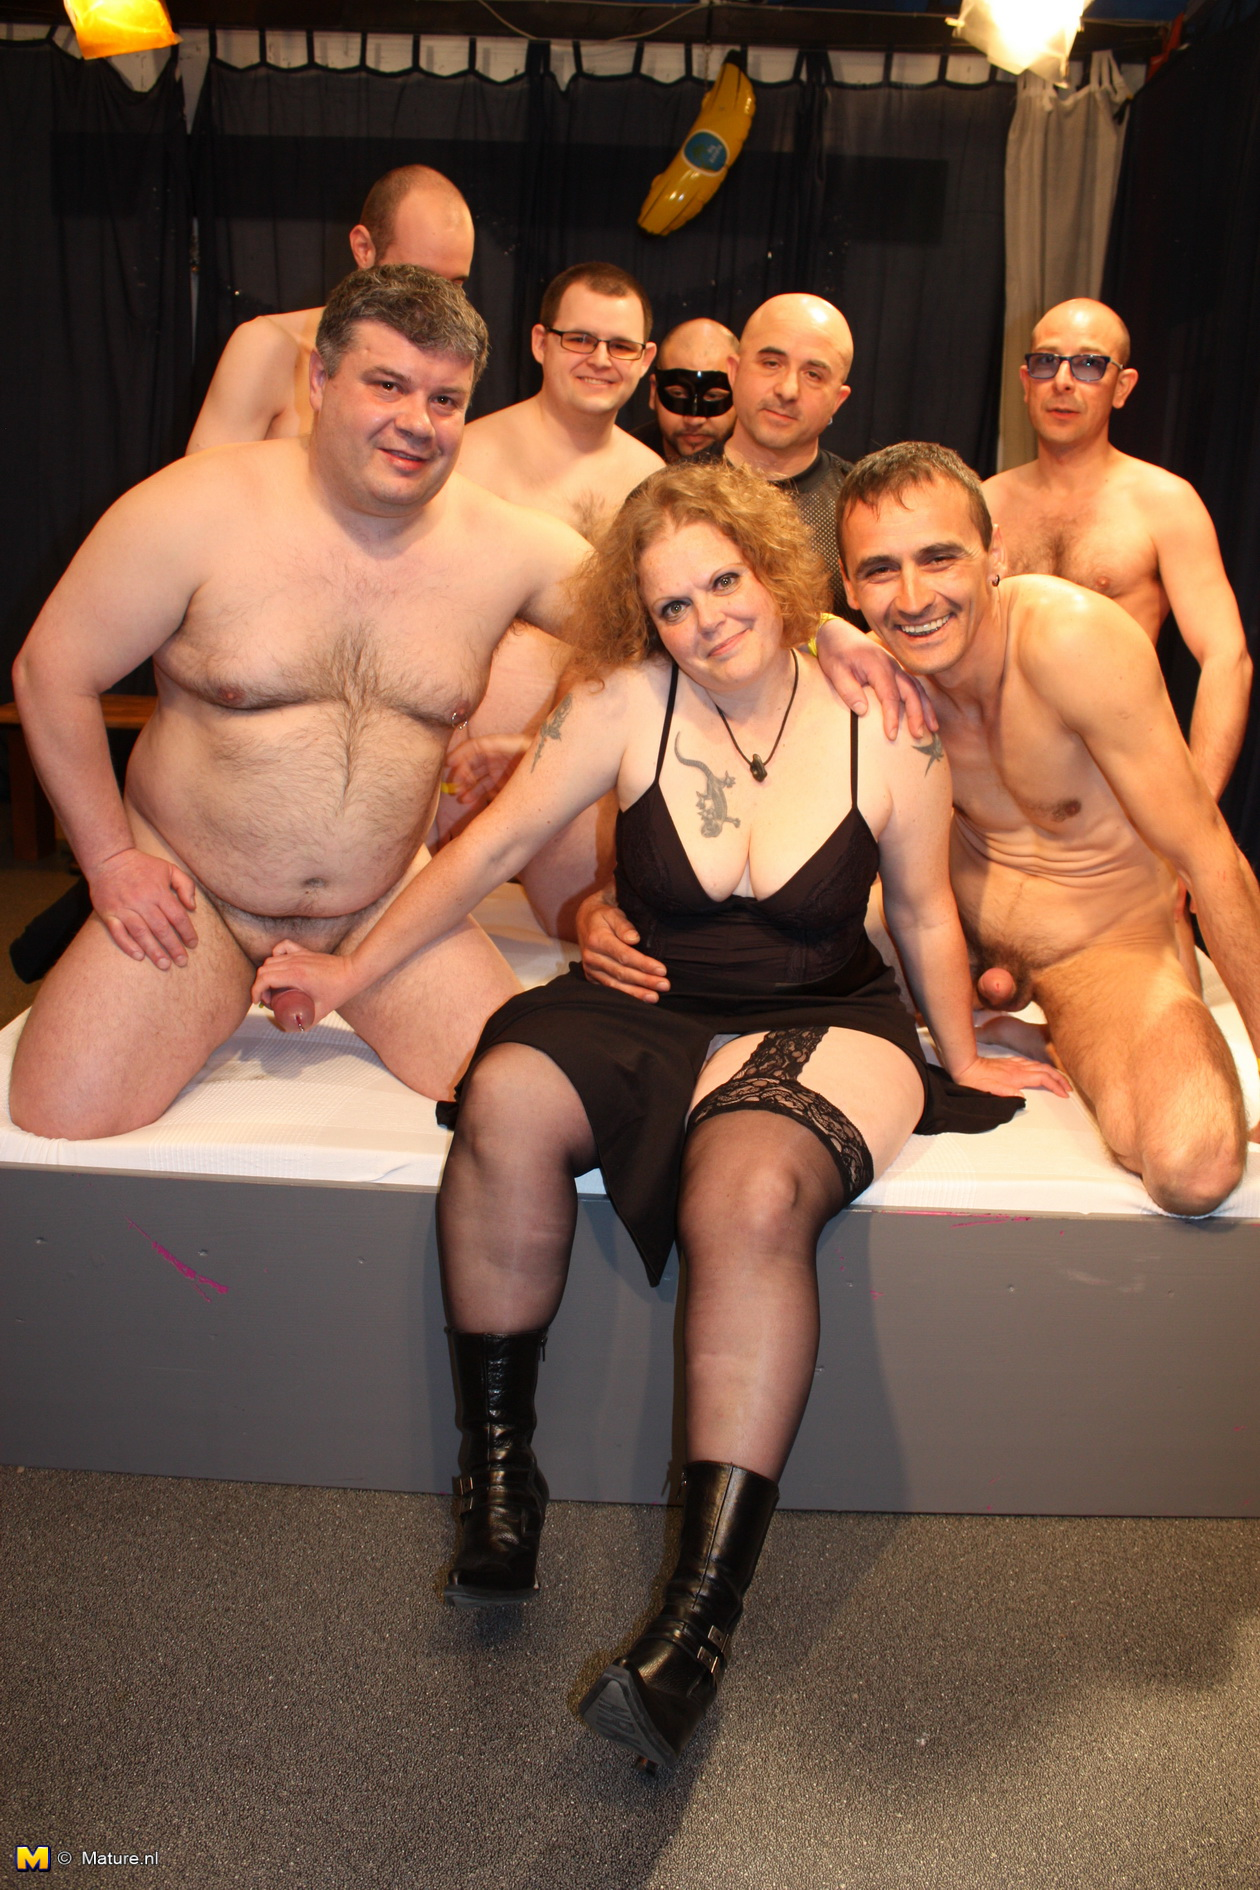 private granny gangbang party – leaked pics